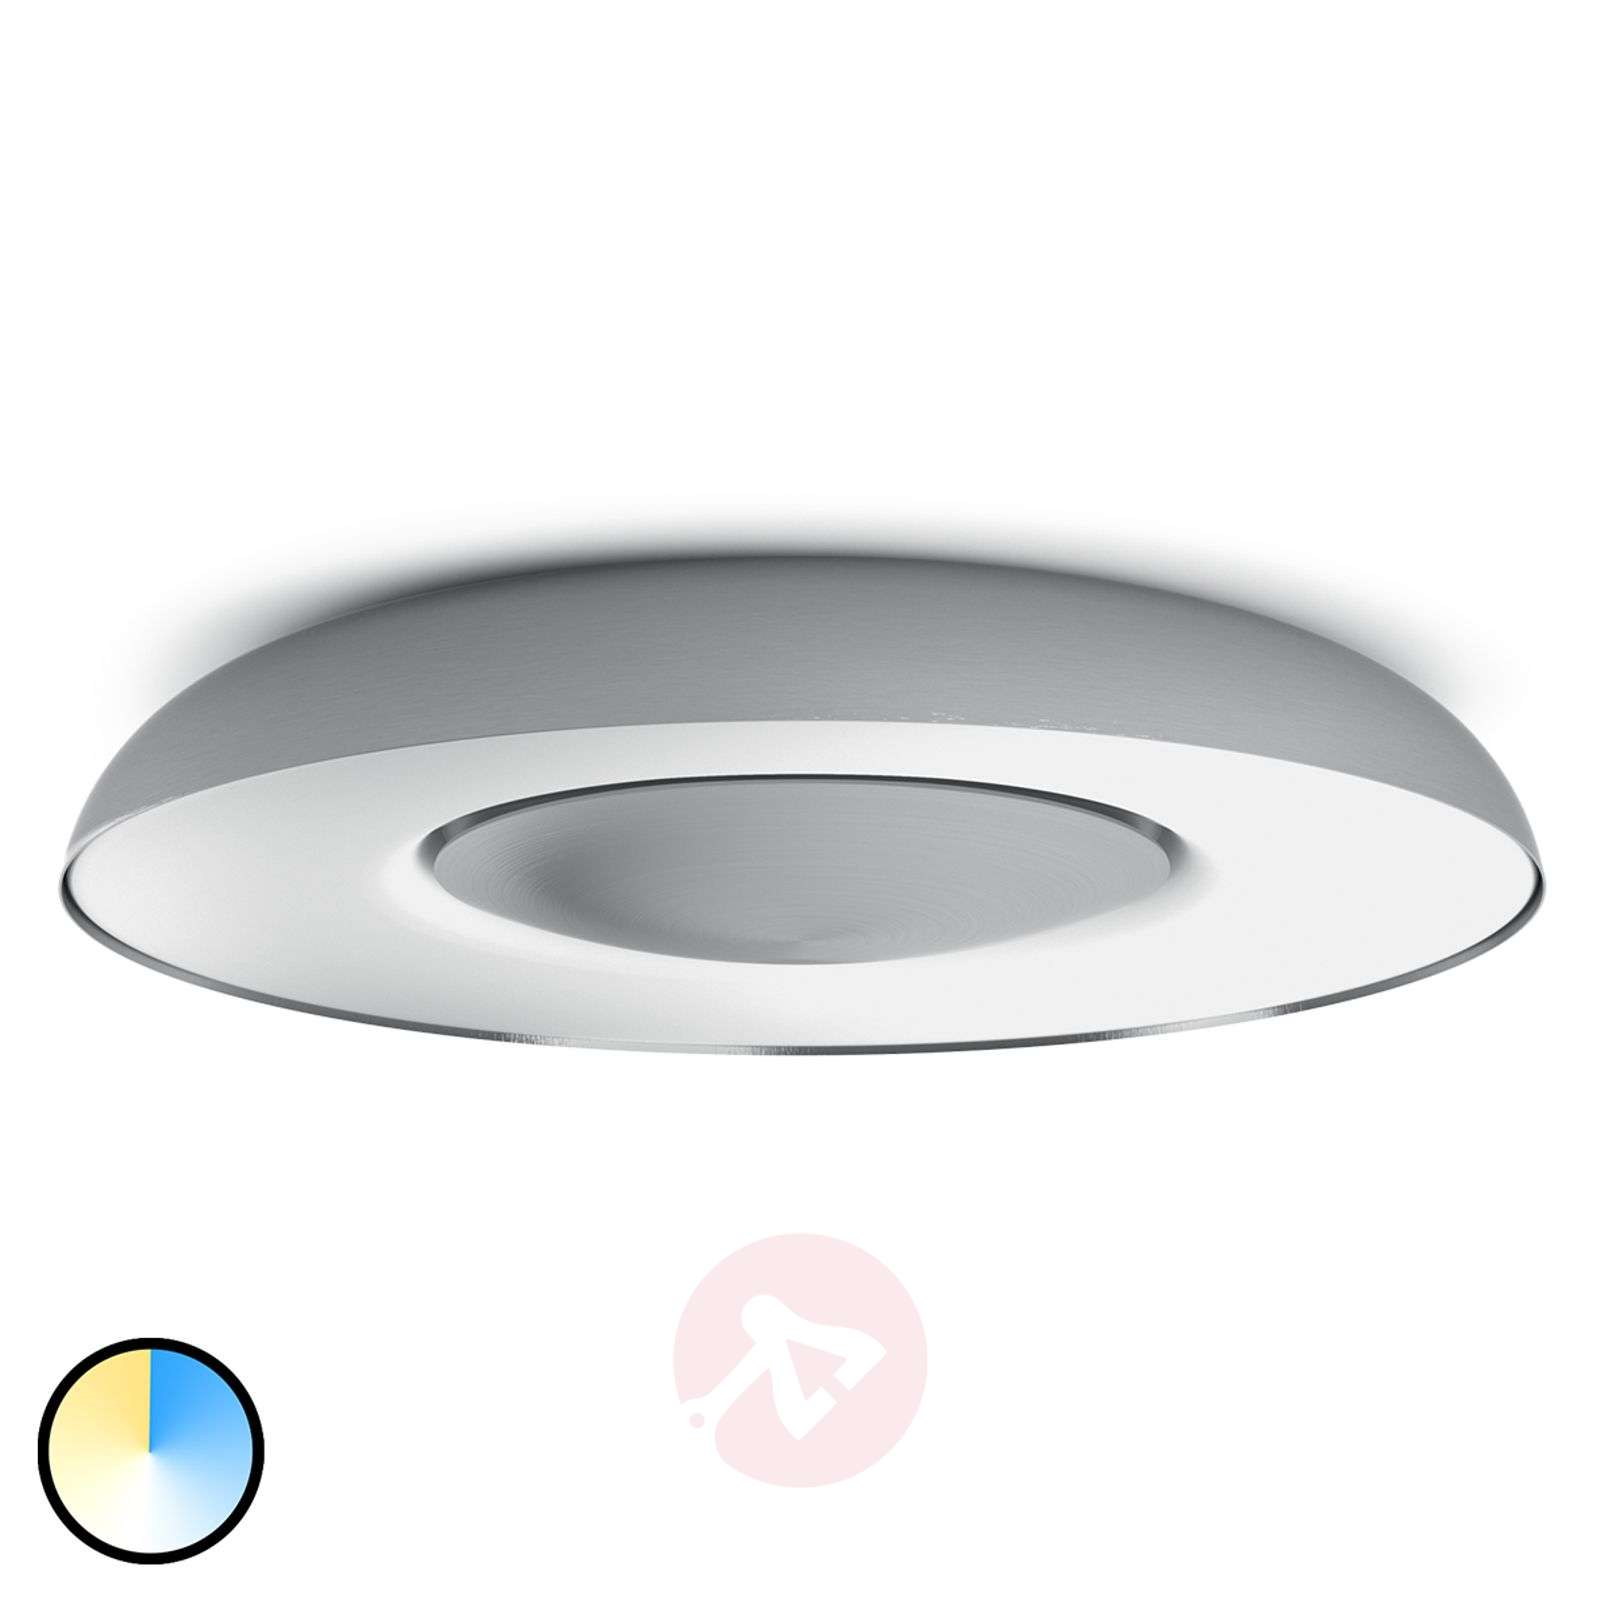 Plafoniera A Led Beign Philips Hue : Philips hue led ceiling light still dimmer switch lights.ie